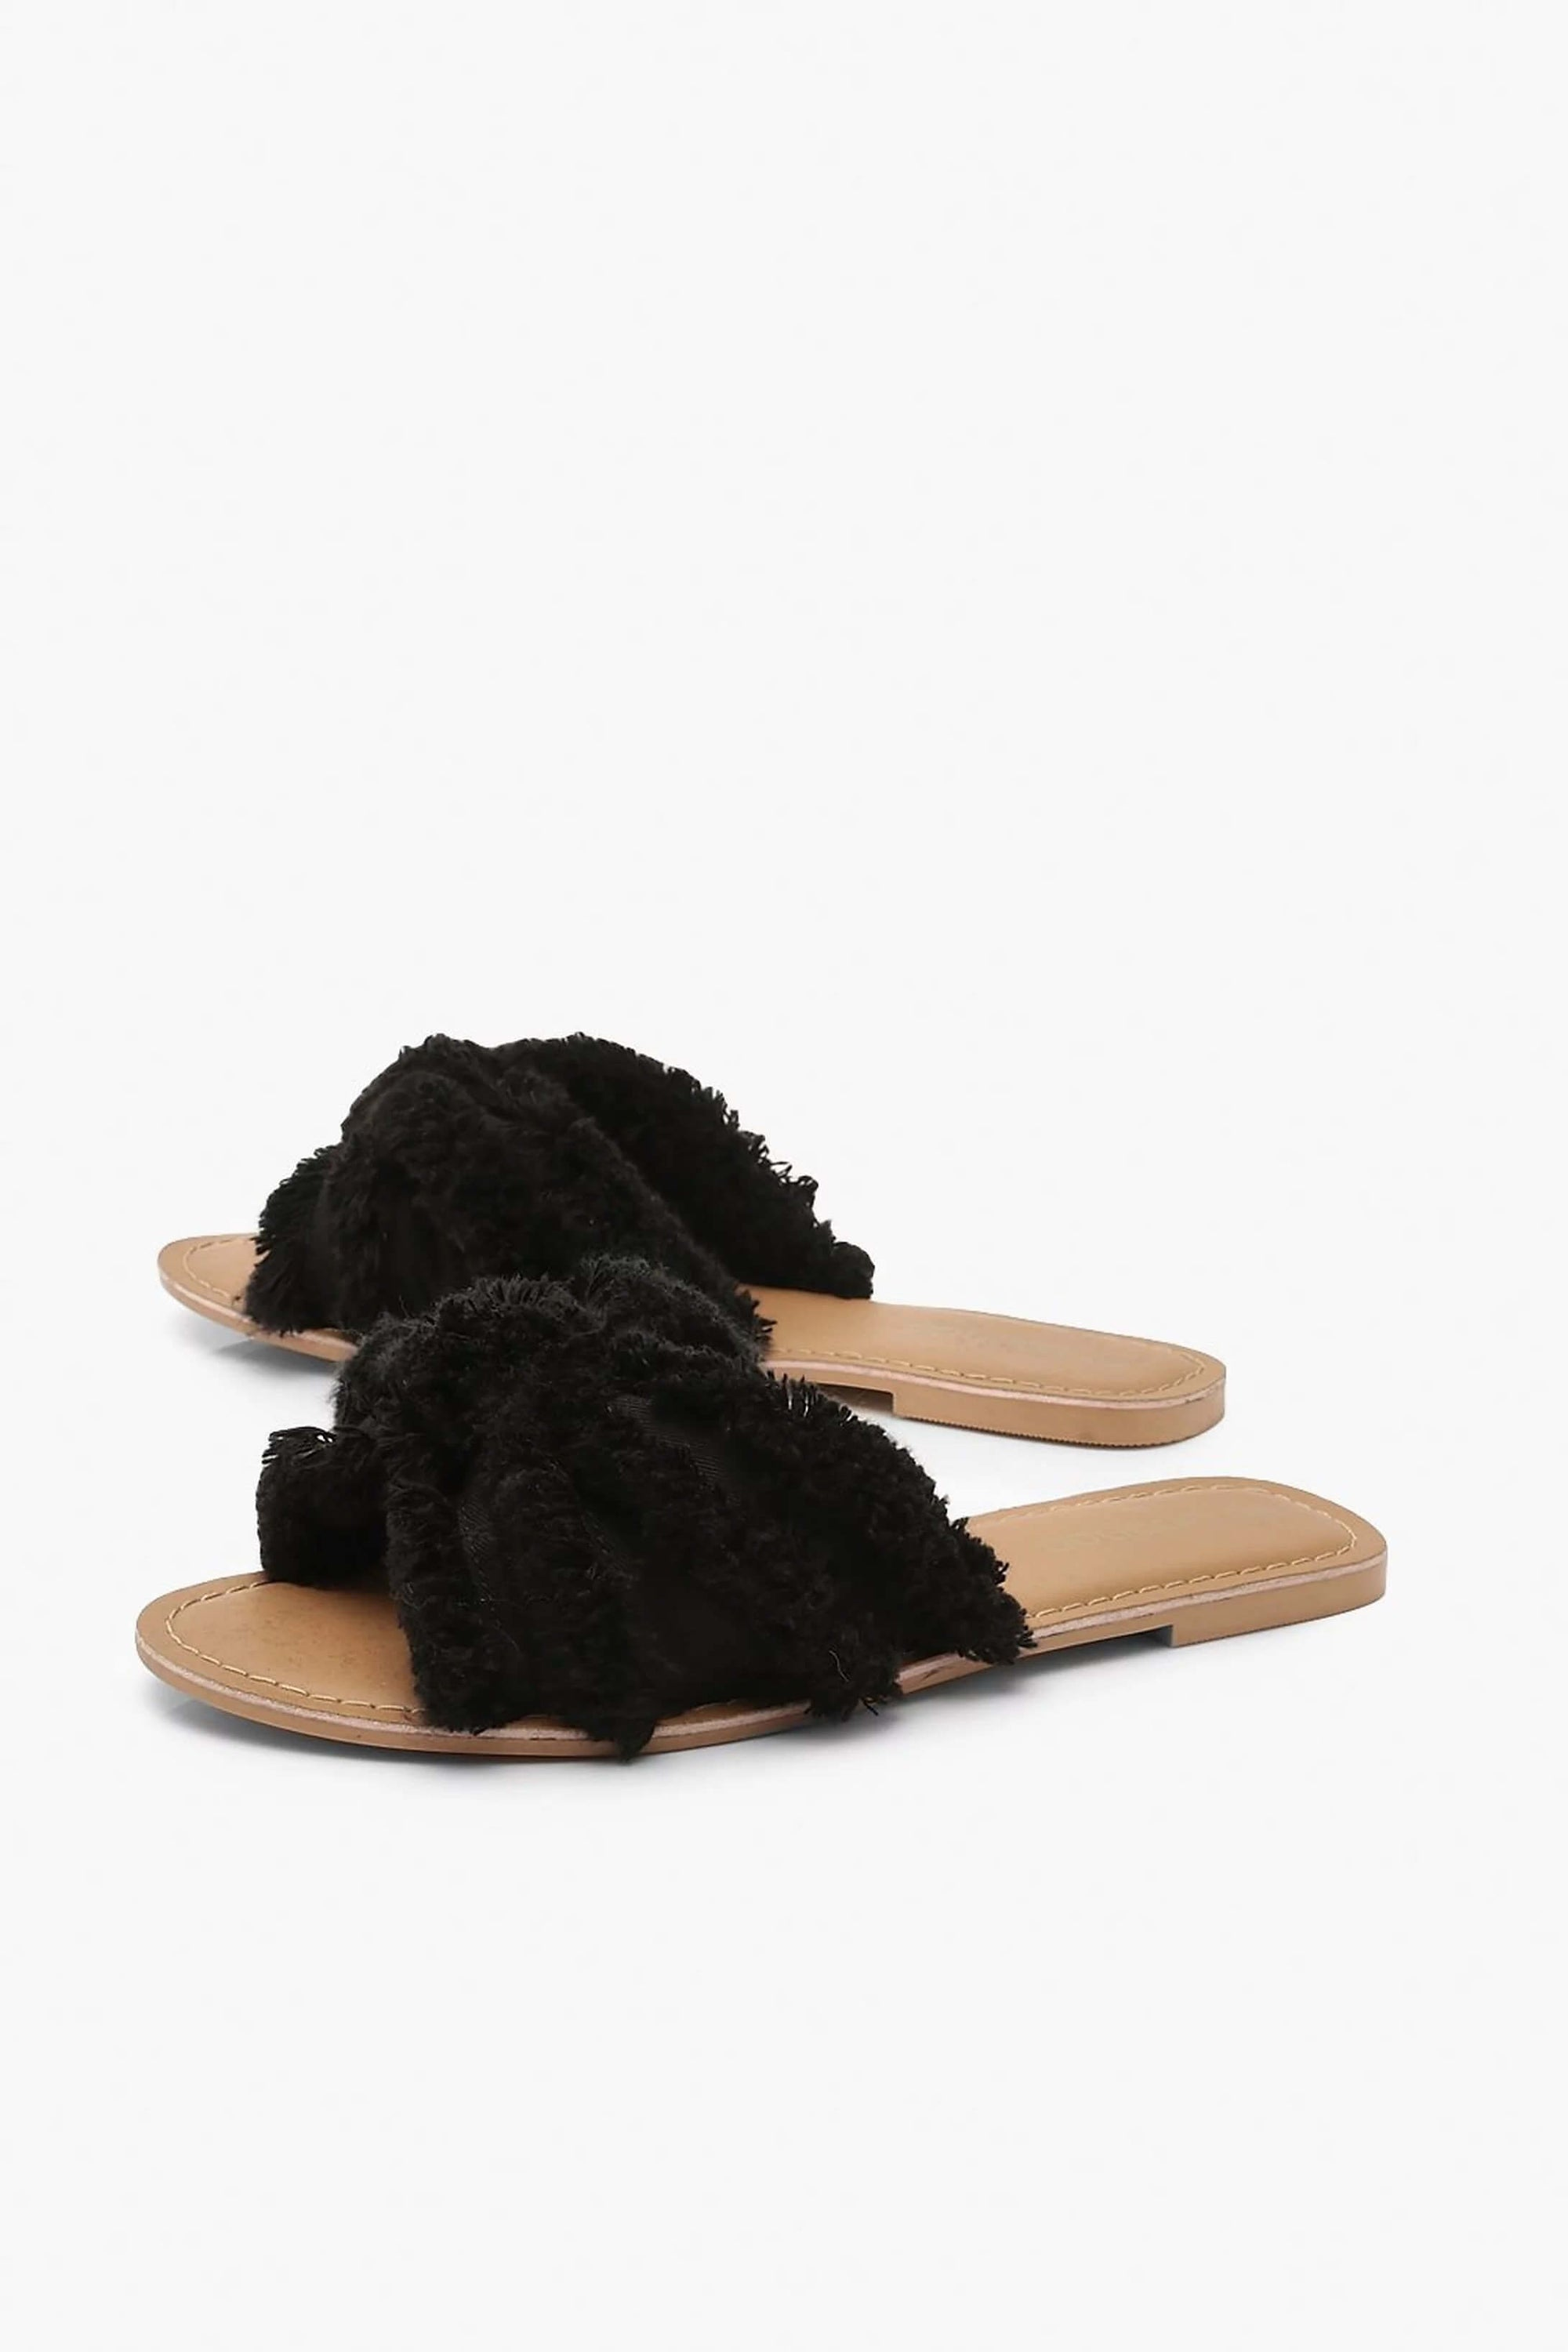 Canvas black slide boho and casual style, espadrilles type and with fringed details.